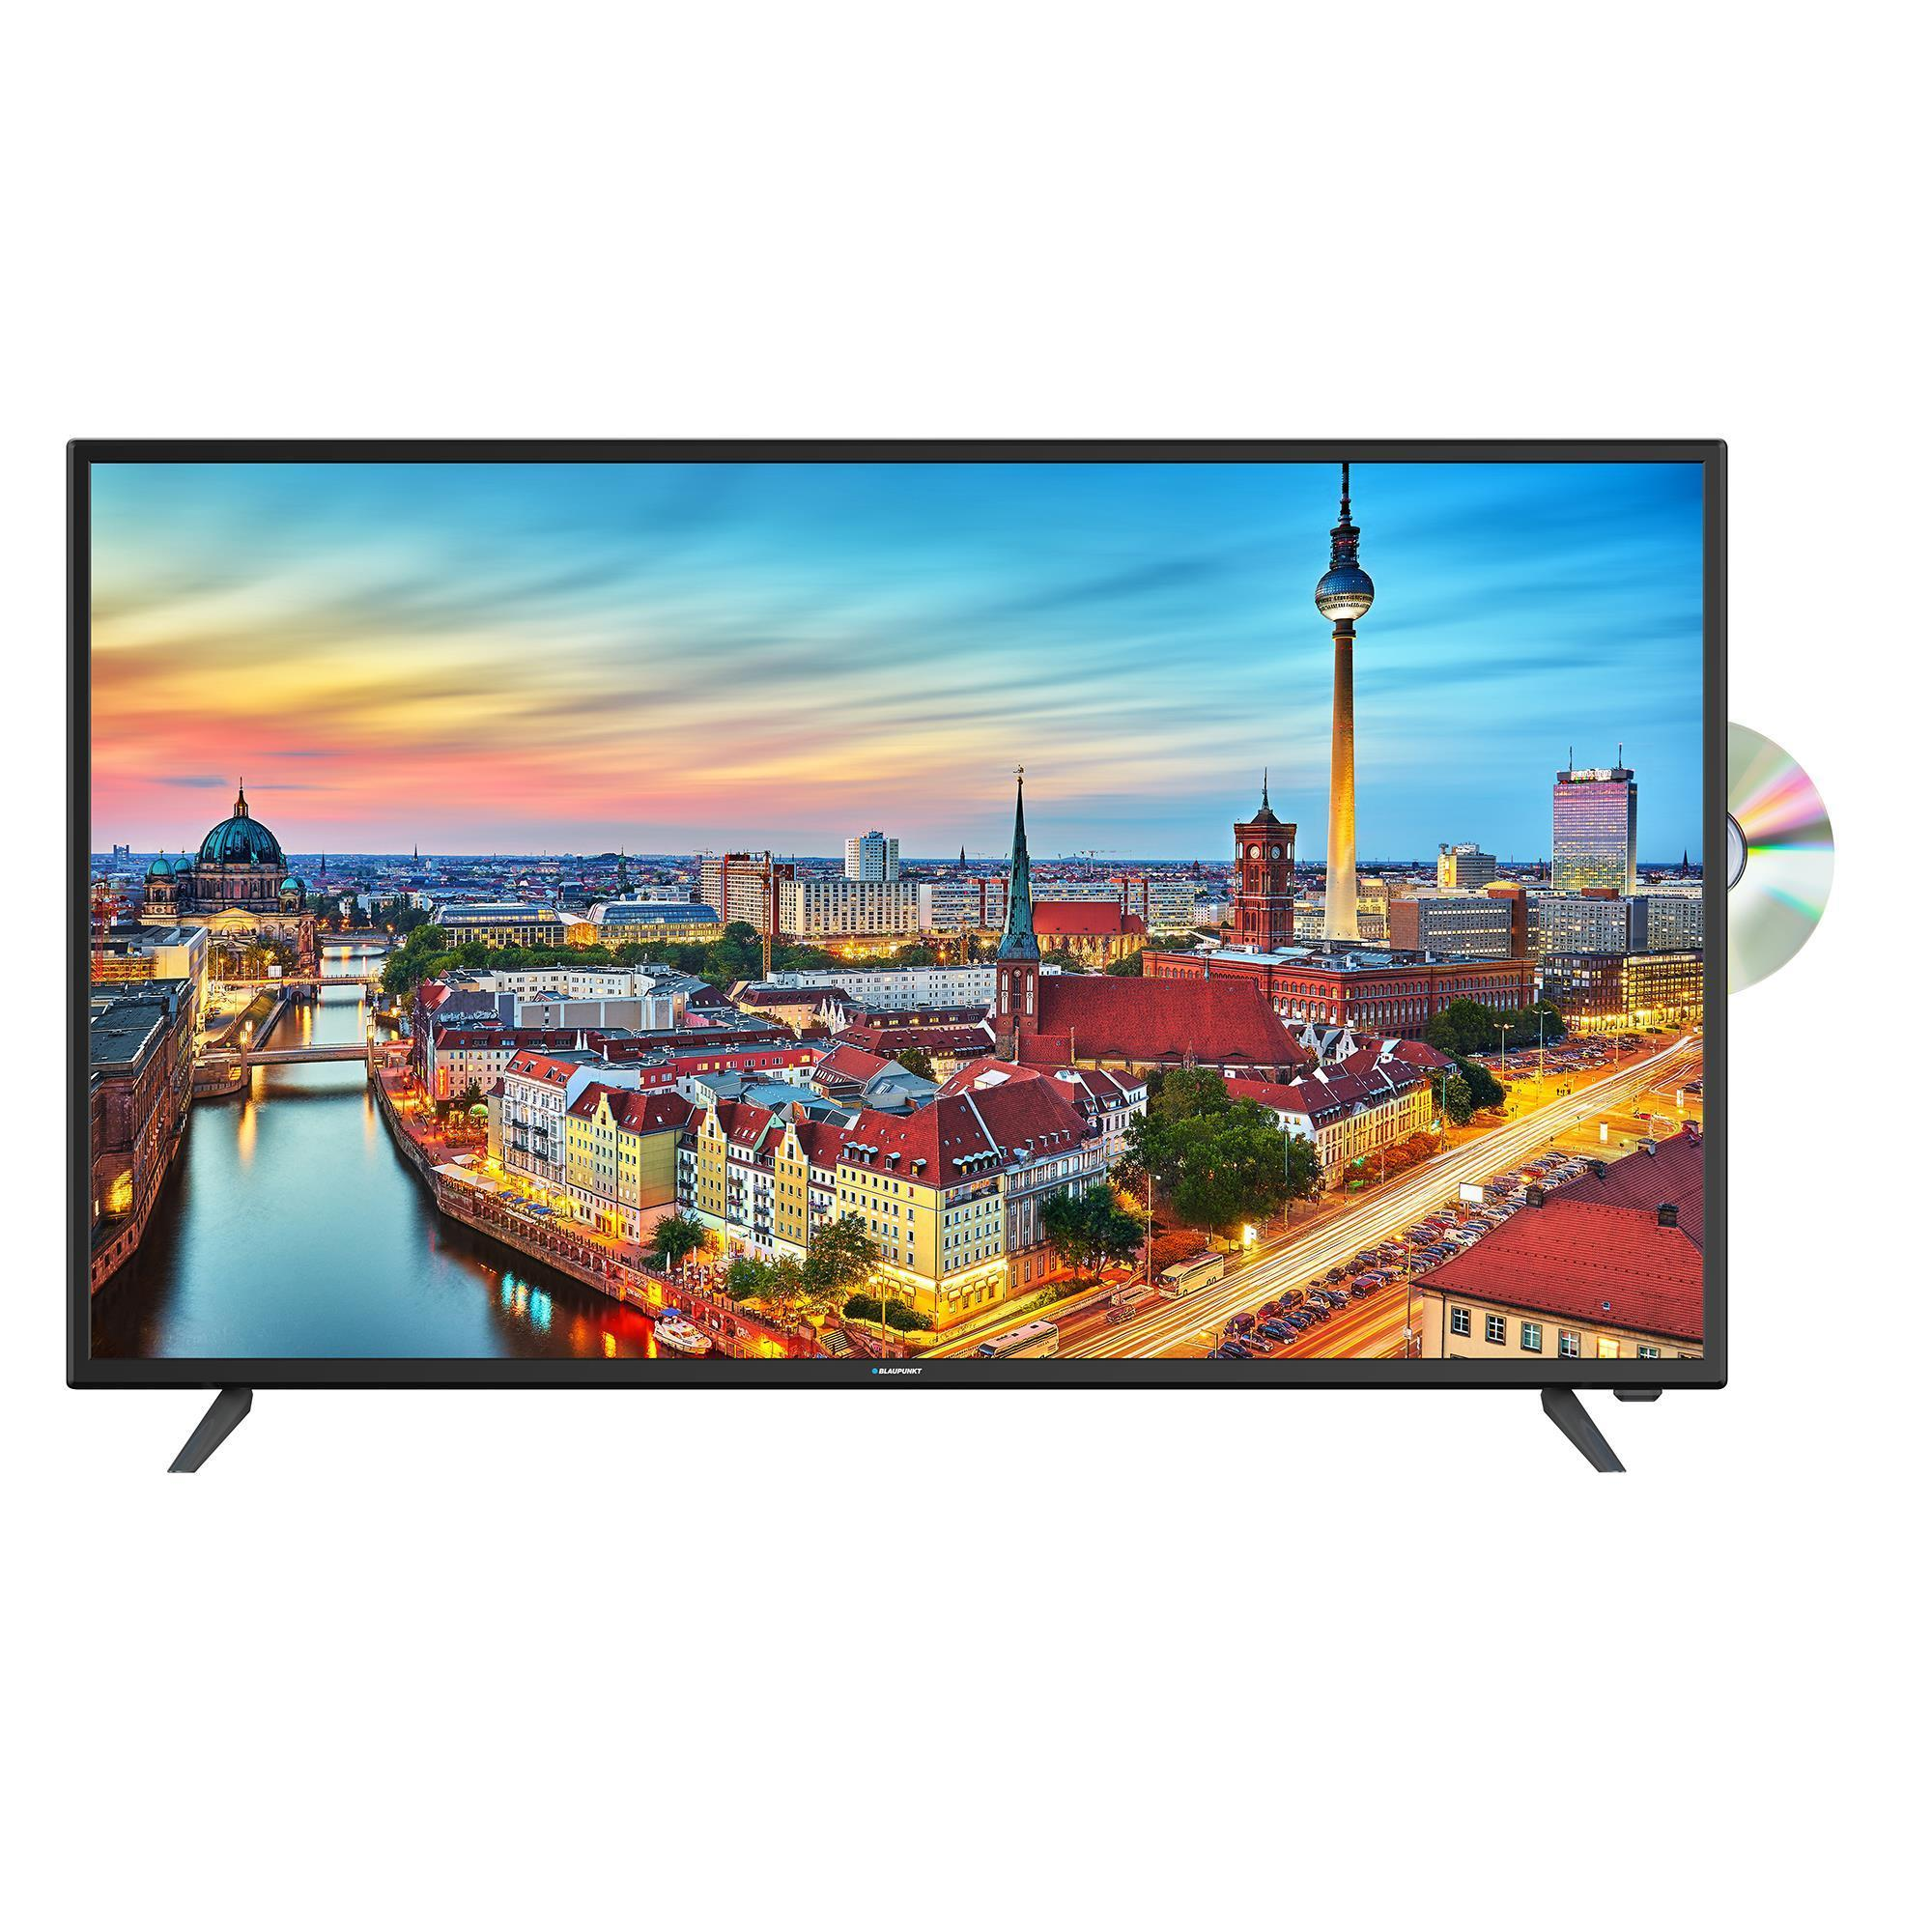 Blaupunkt 40″ Full HD TV with Built-in DVD Player